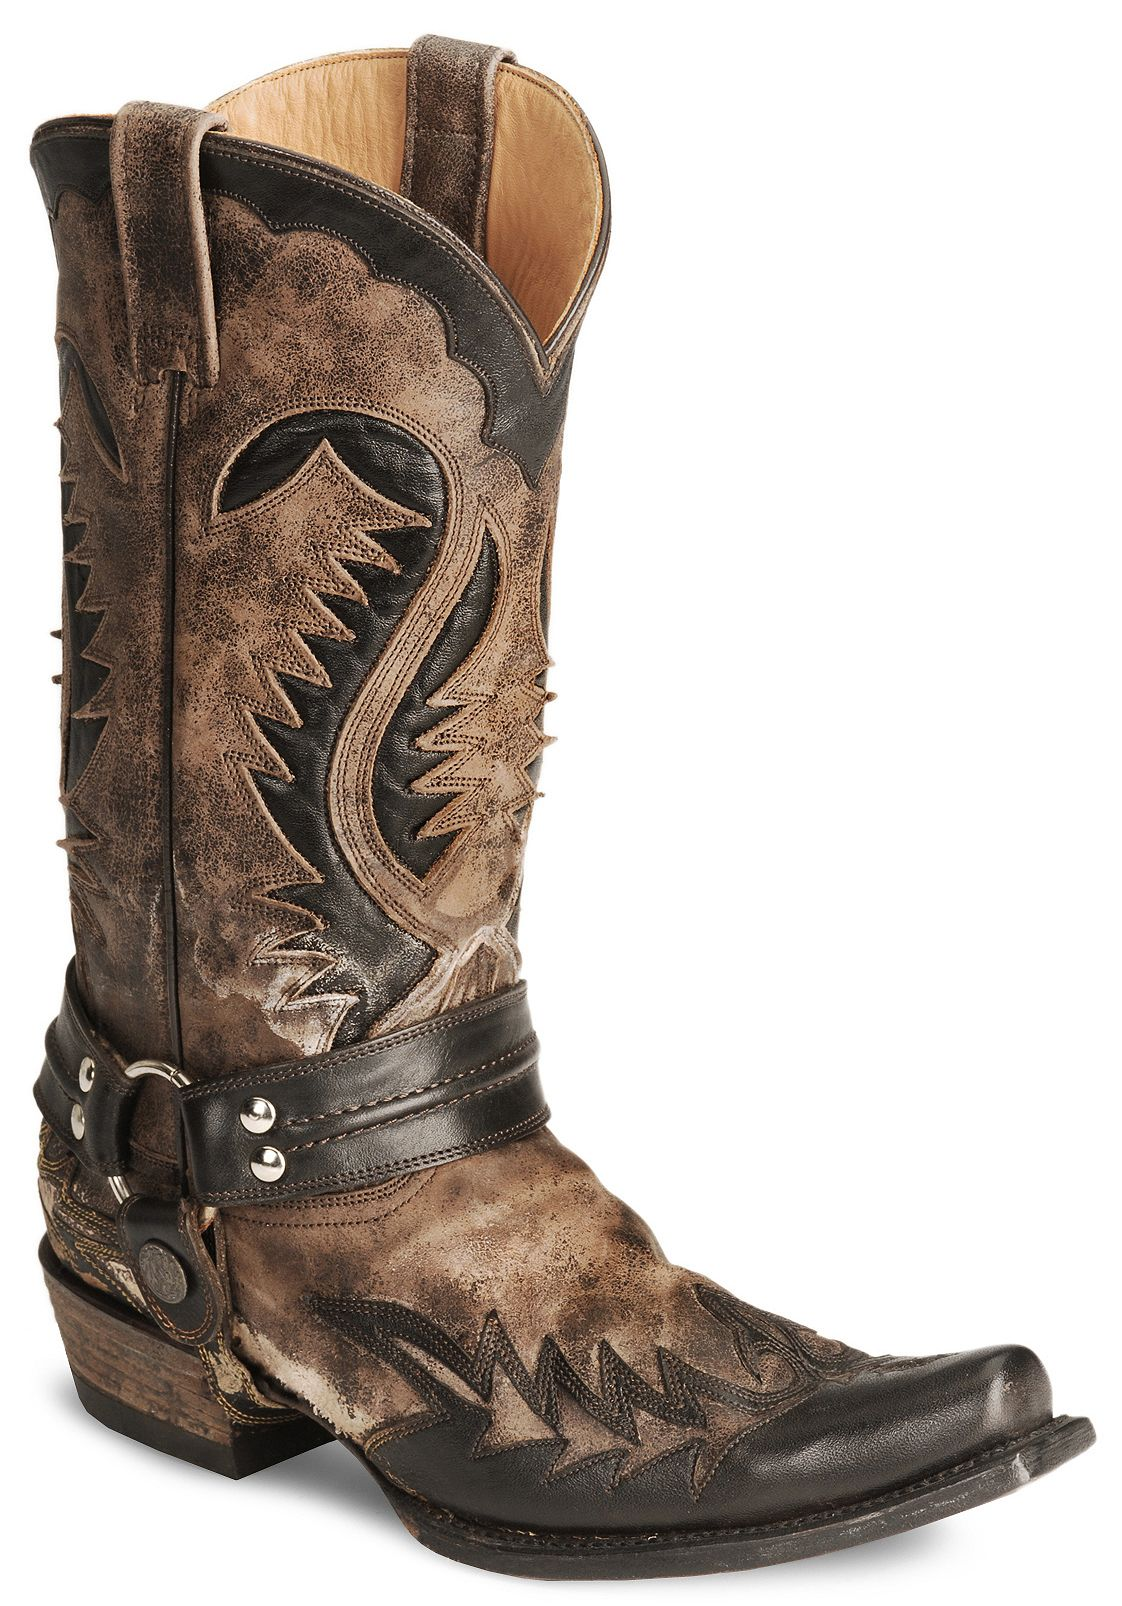 Stetson Brown Harness Cowboy Boots Snip Toe Sheplers